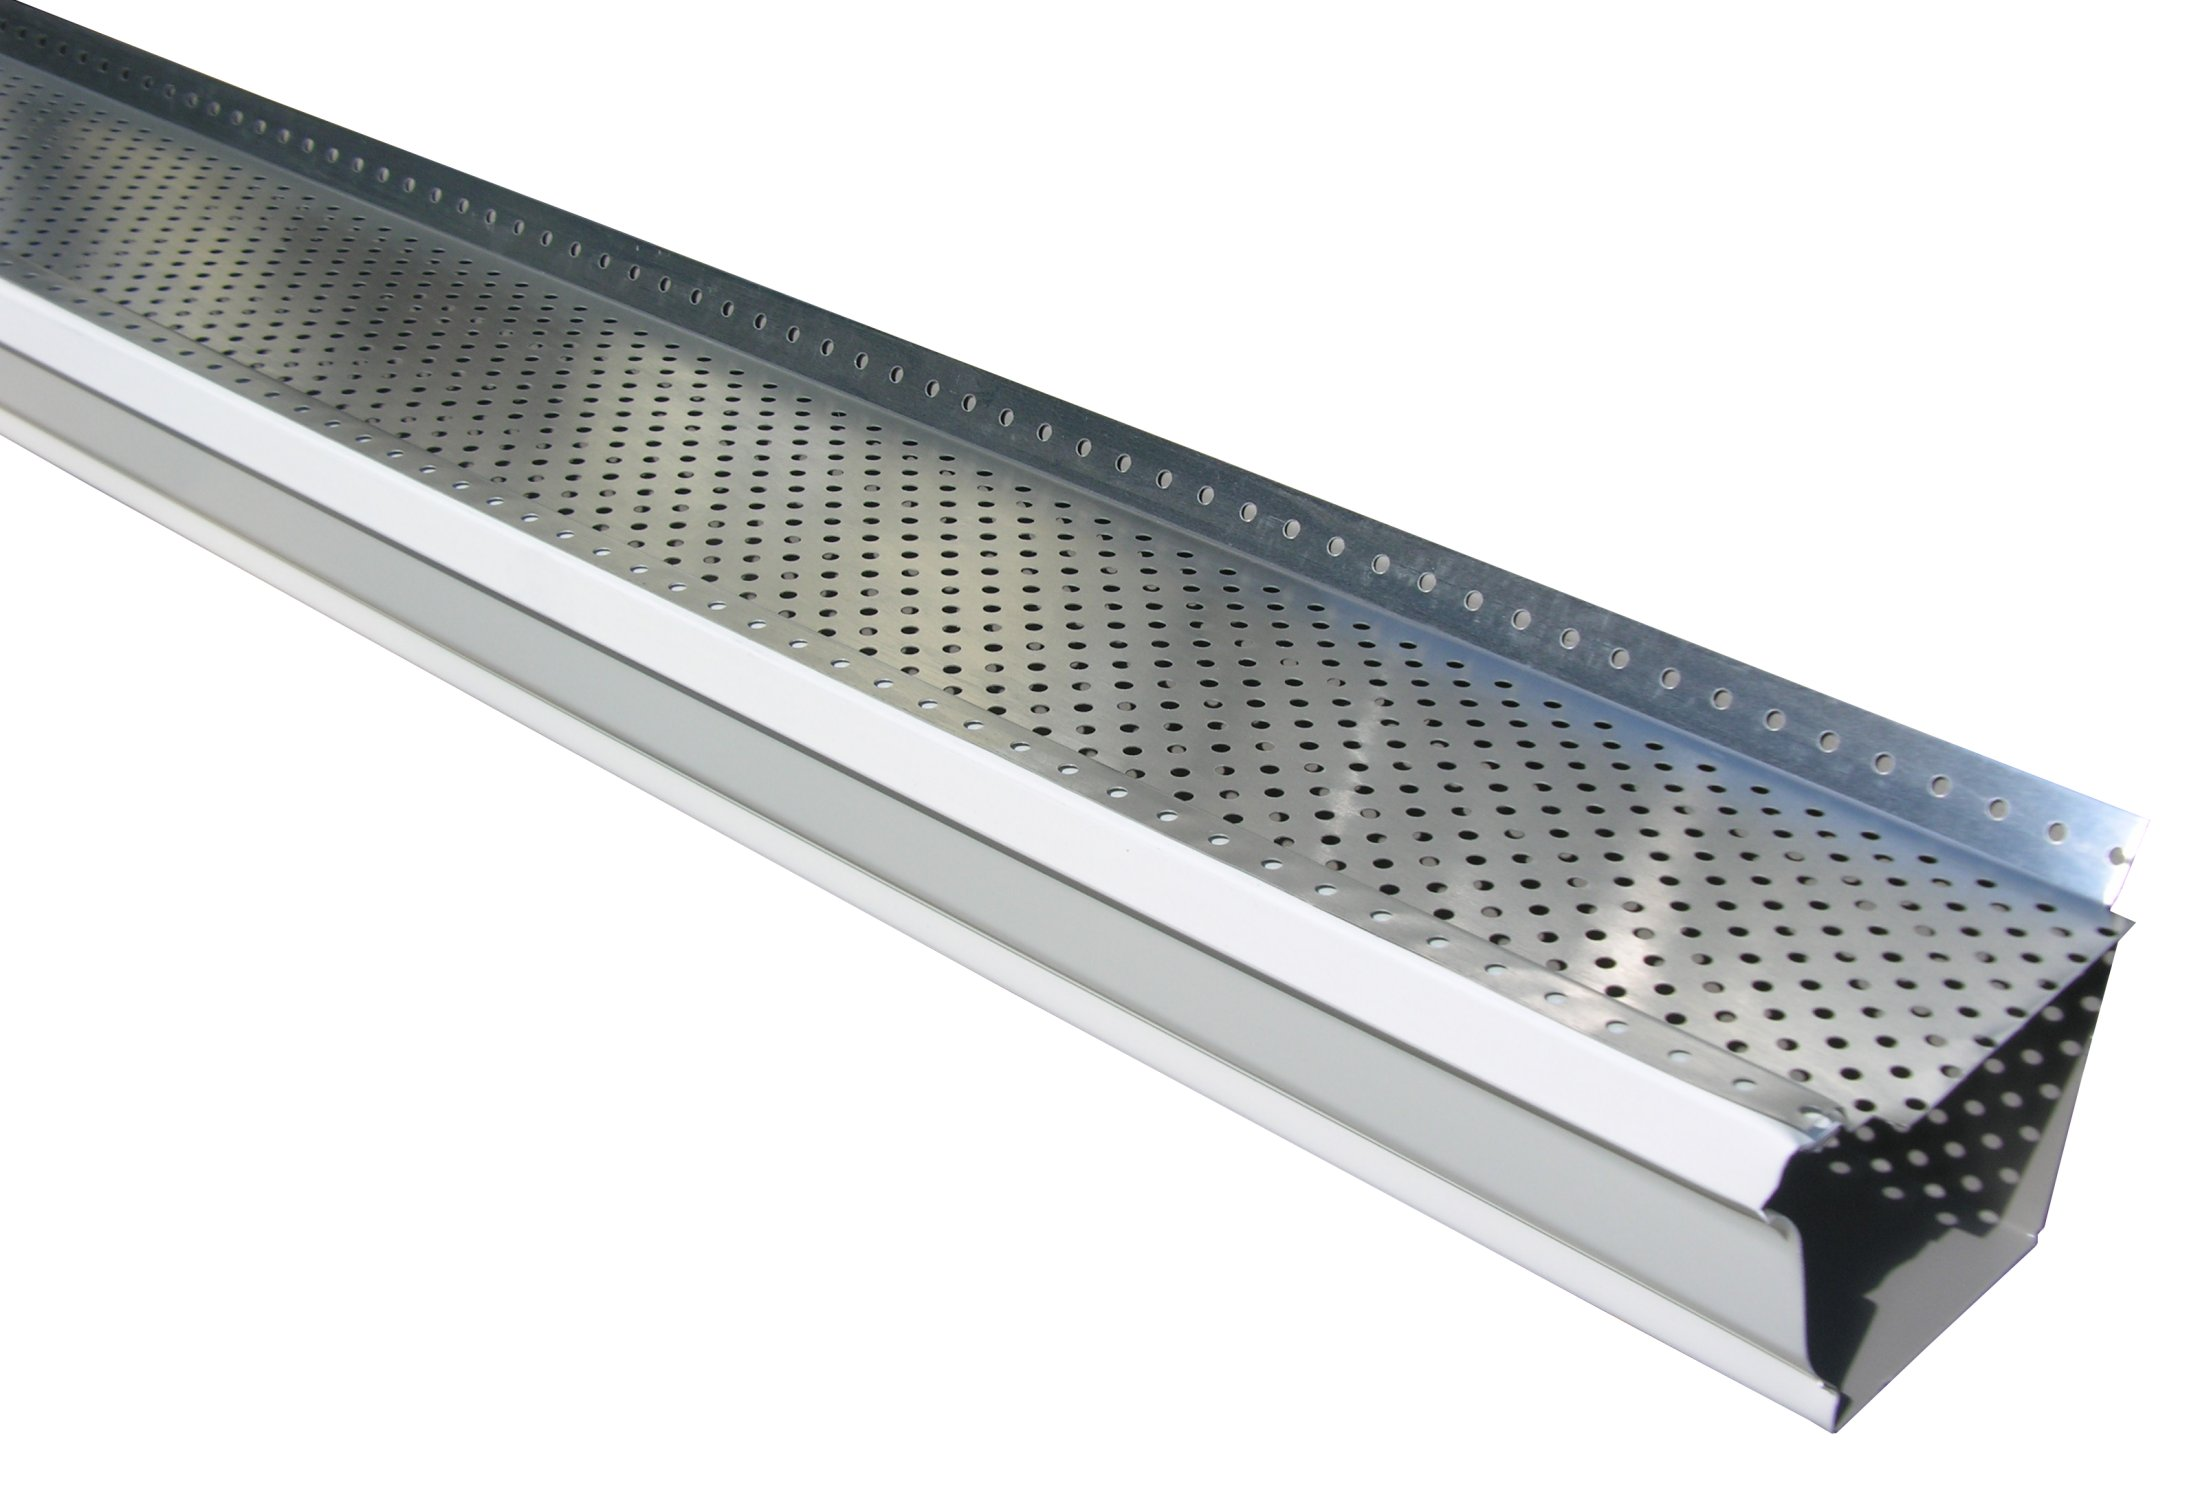 home depot snap in gutter filter with Gutter Protection K Style Hinged Gutter Screen Gutter Guards on Pensandpencils besides Gutter Protection K Style Hinged Gutter Screen Gutter Guards together with 992474 moreover Classroomitems3 furthermore Lowes Inventory Checker.